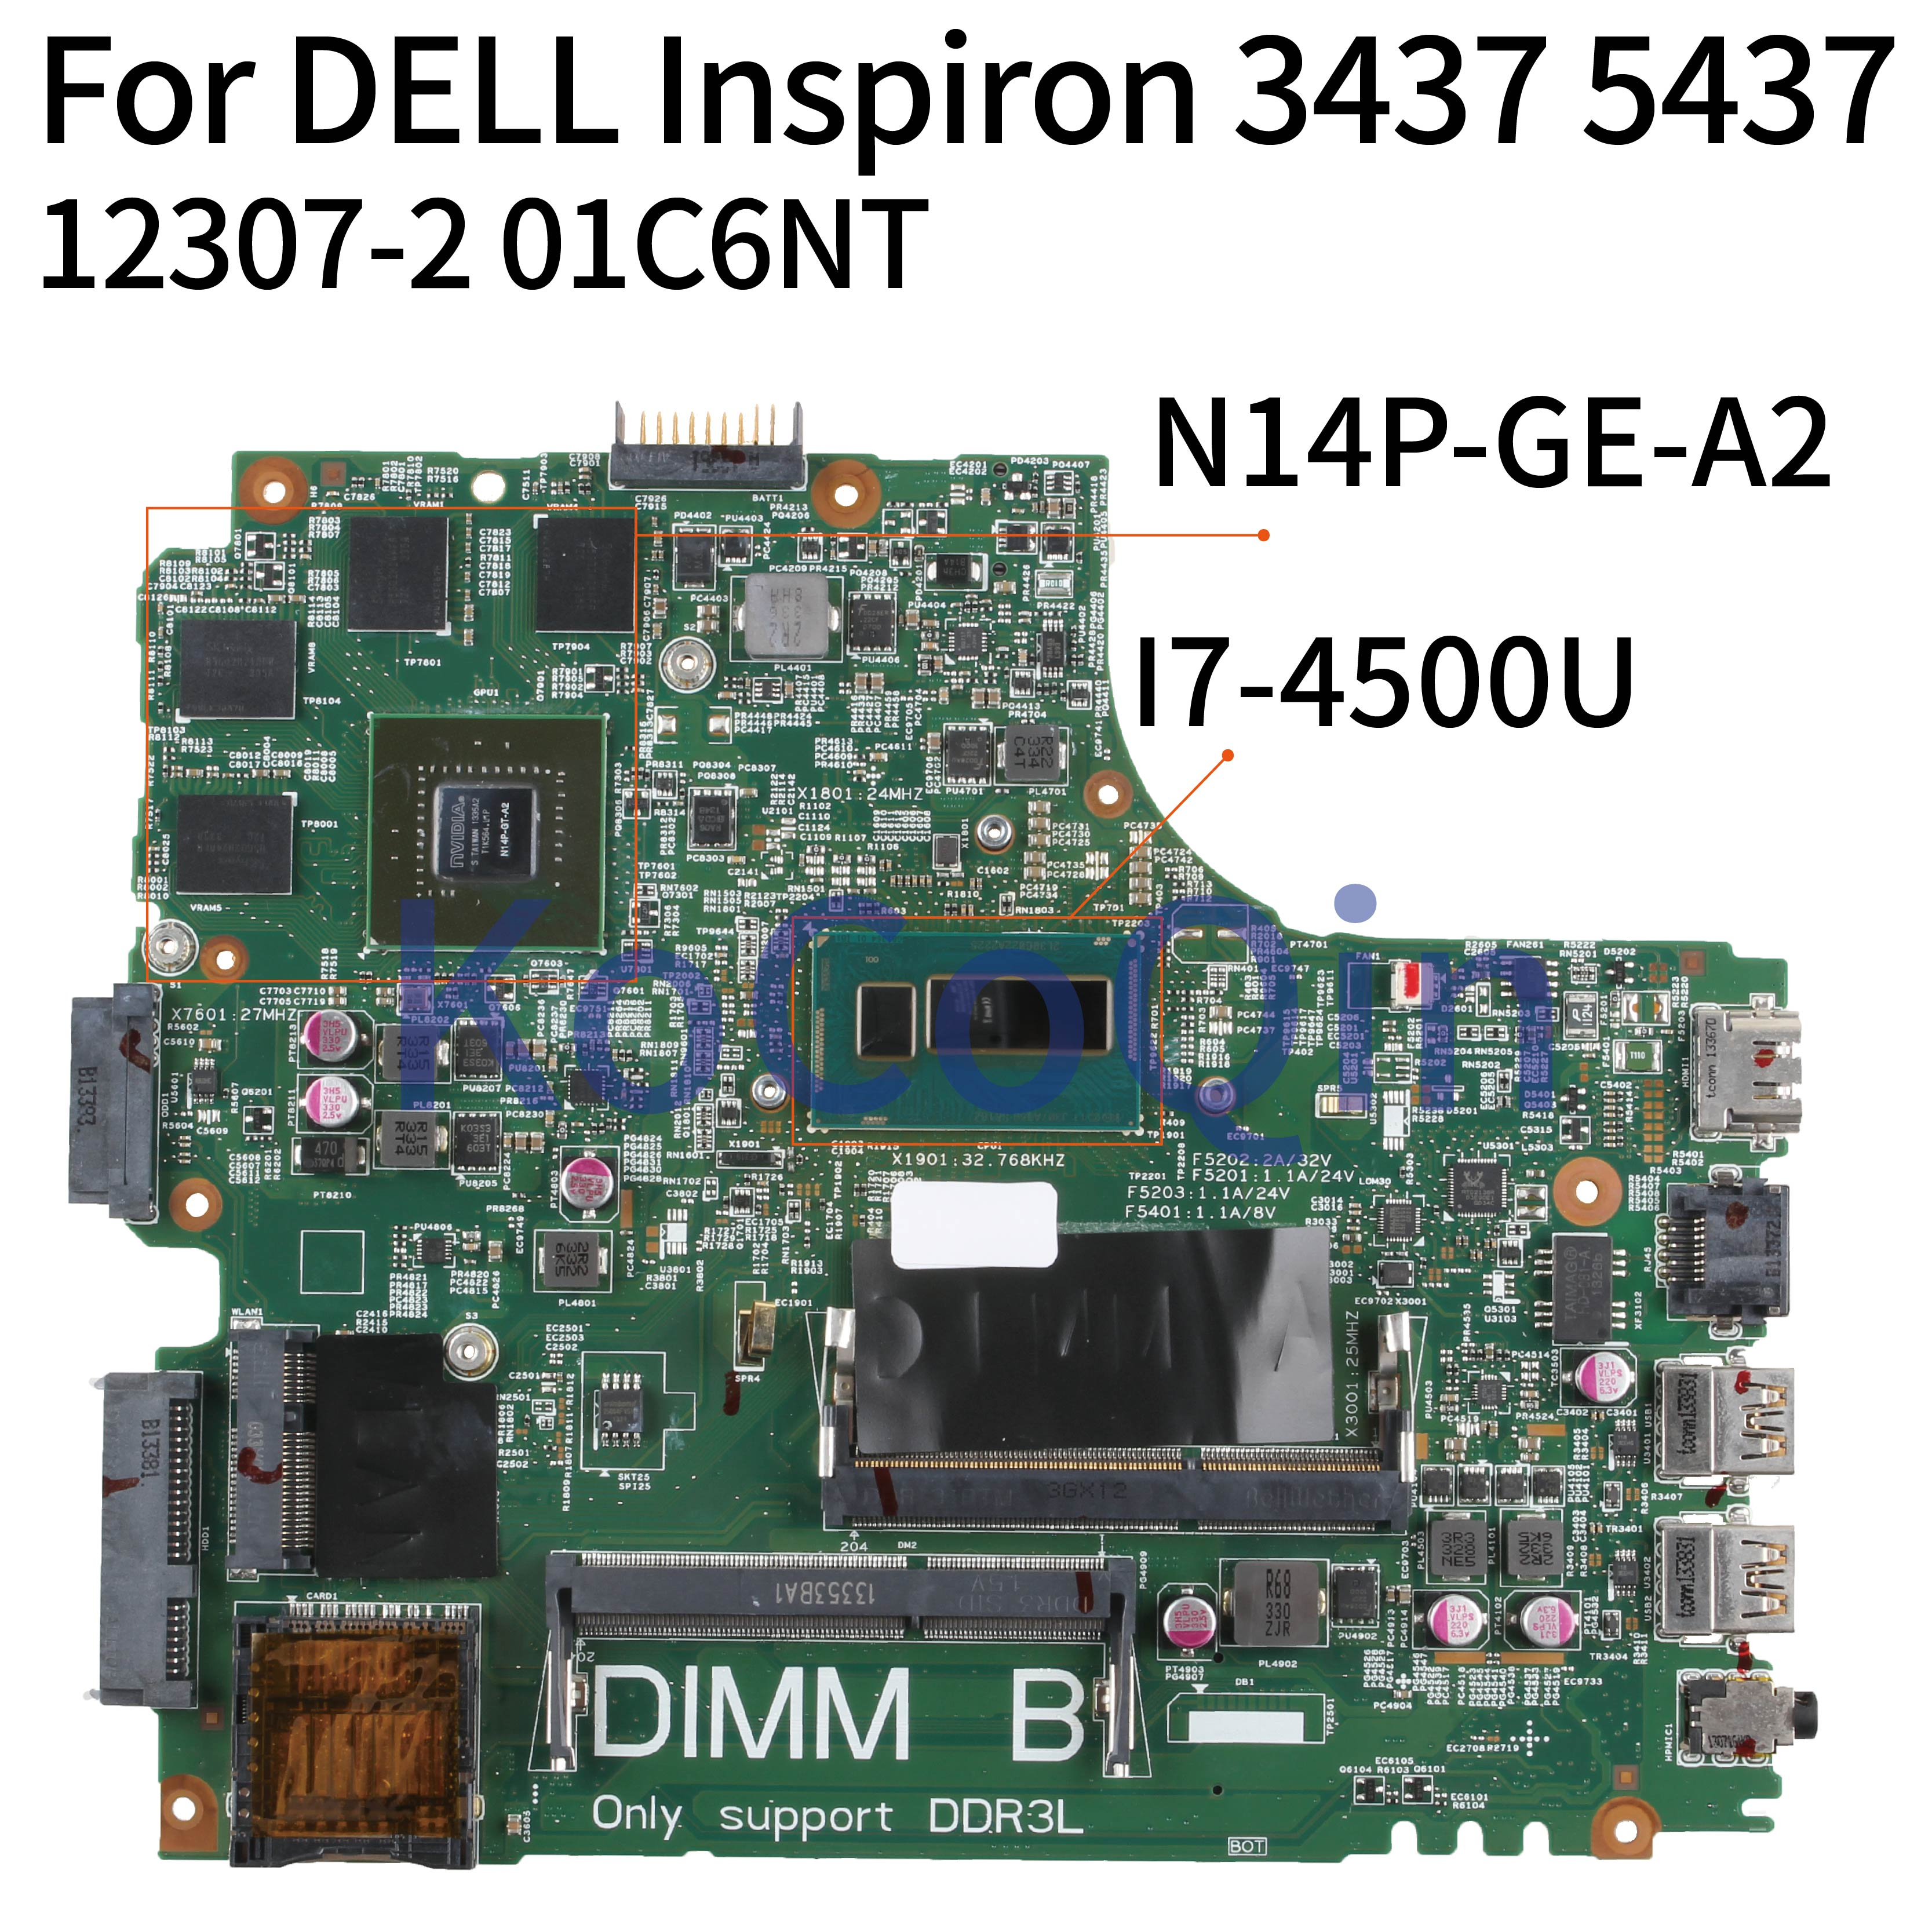 KoCoQin Laptop Motherboard For DELL Inspiron 14R 3437 5437 I7-4500U Mainboard 12307-2 CN-01C6NT 01C6NT N14P-GE-A2